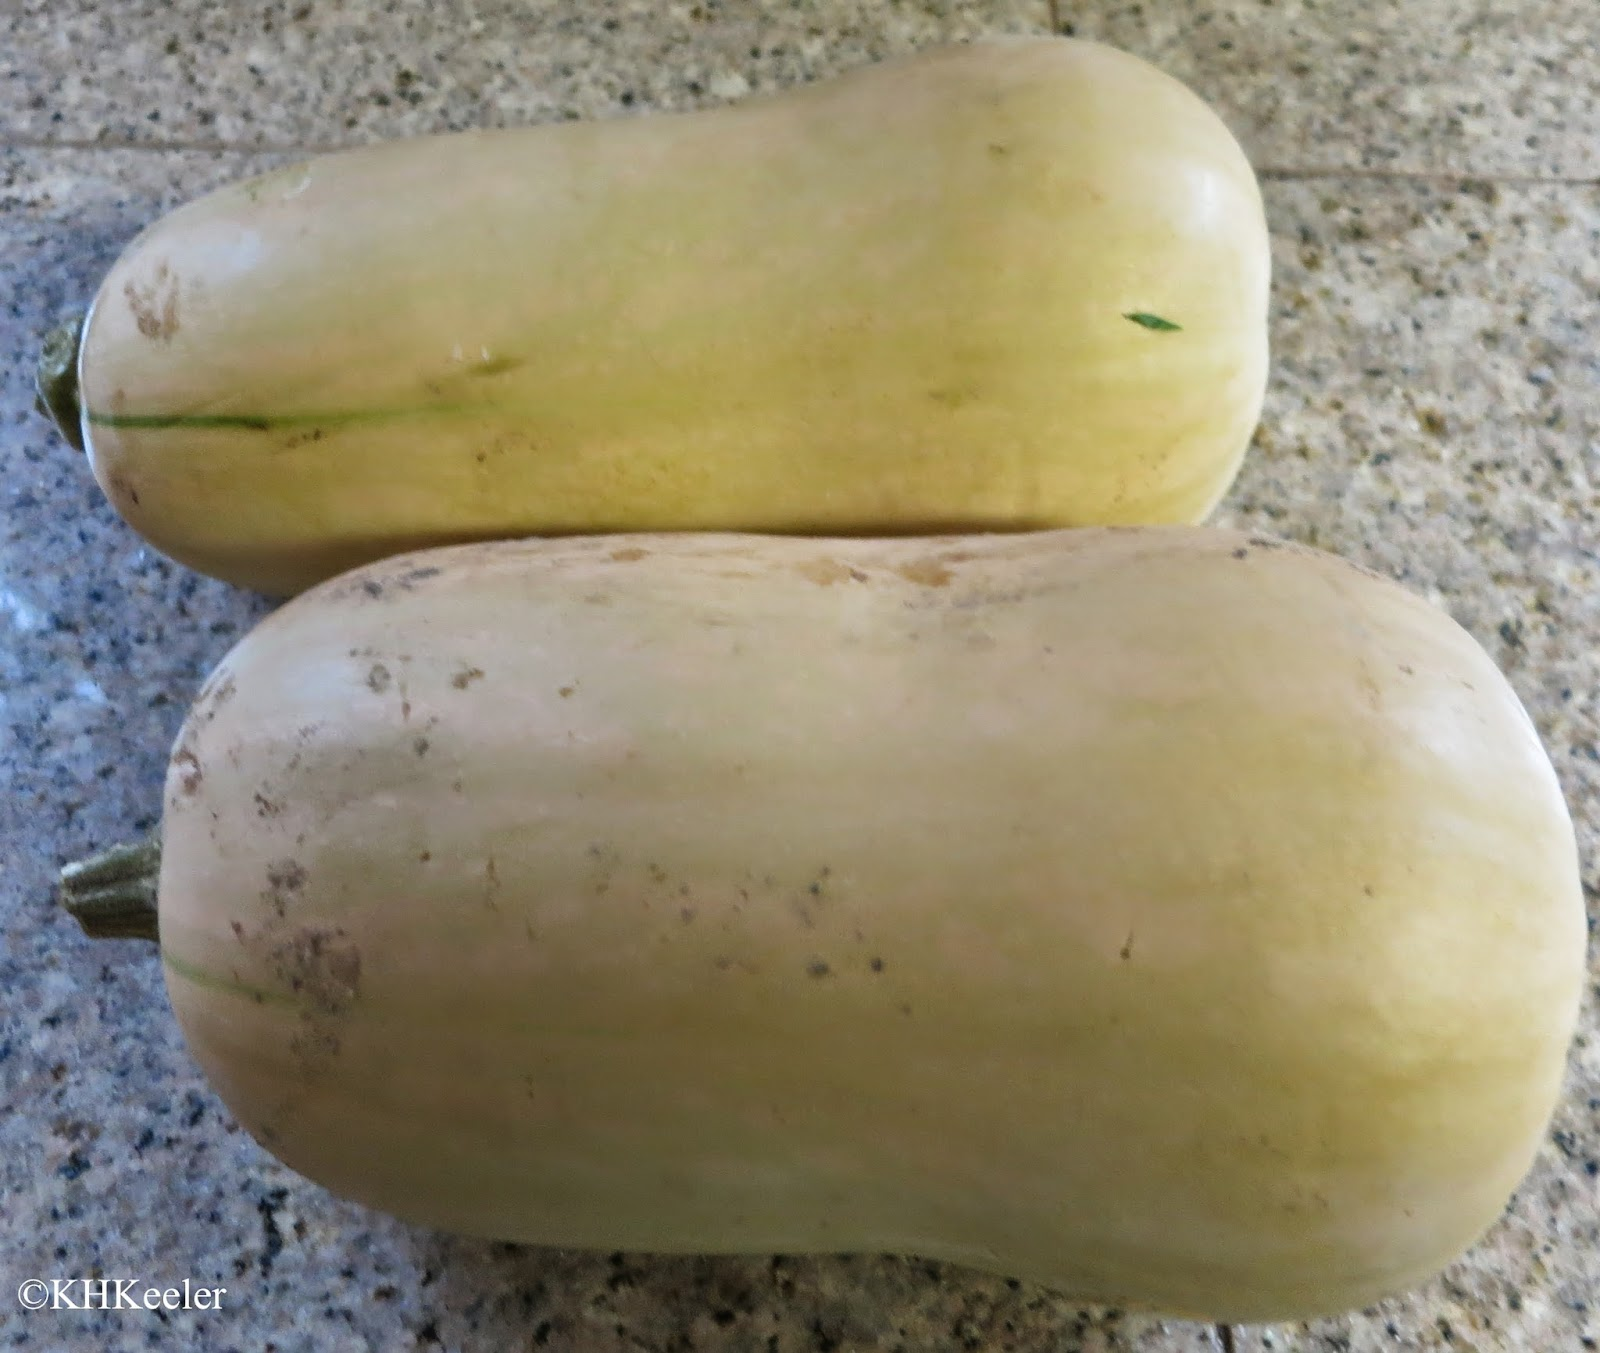 butternut, a winter squash